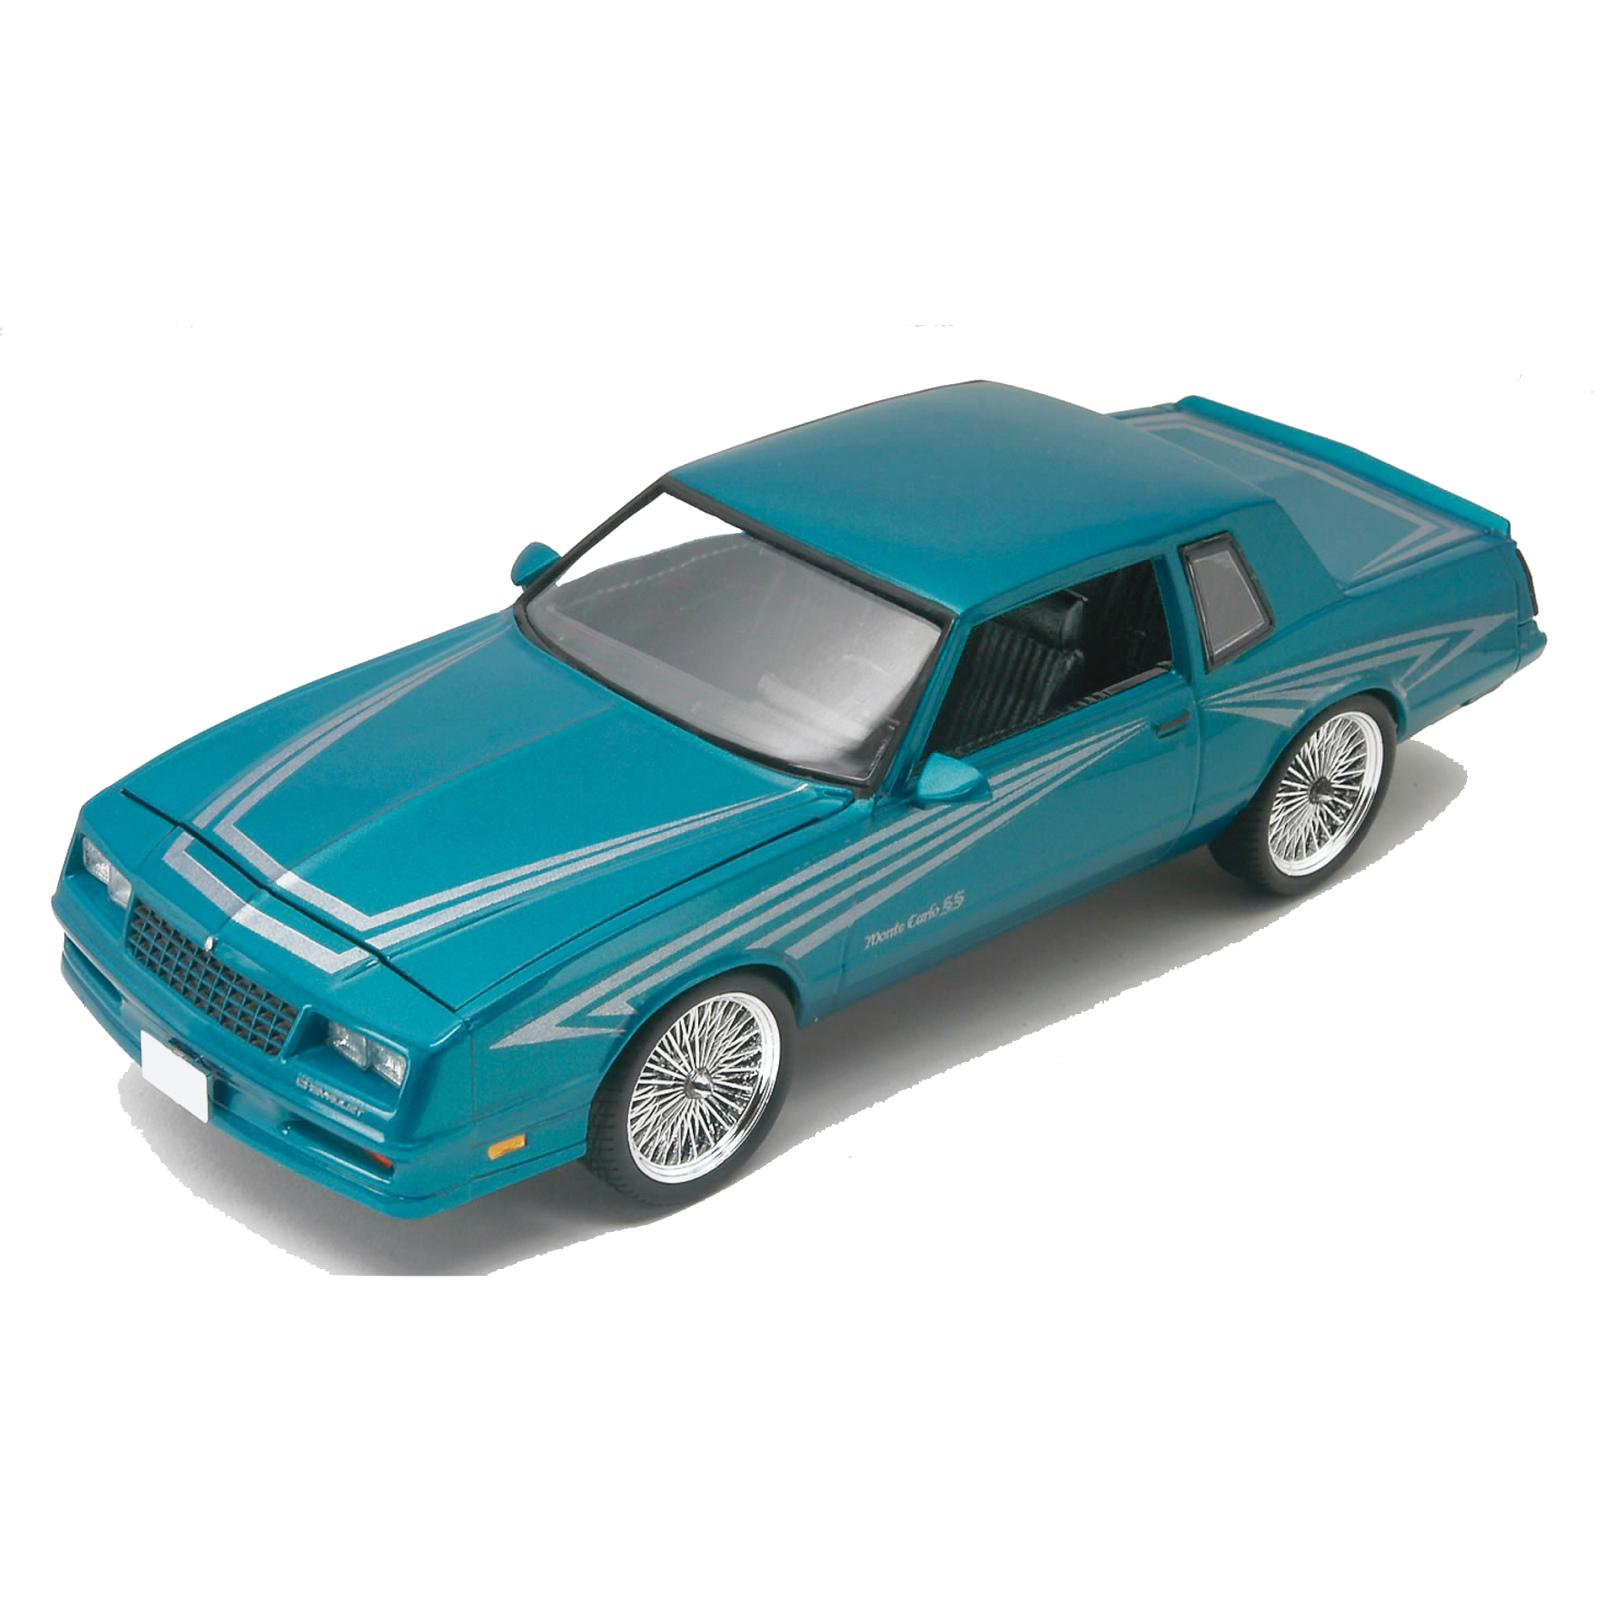 Revell 1:24 Scale 1986 Monte Carlo 2 Plastic Model Kit